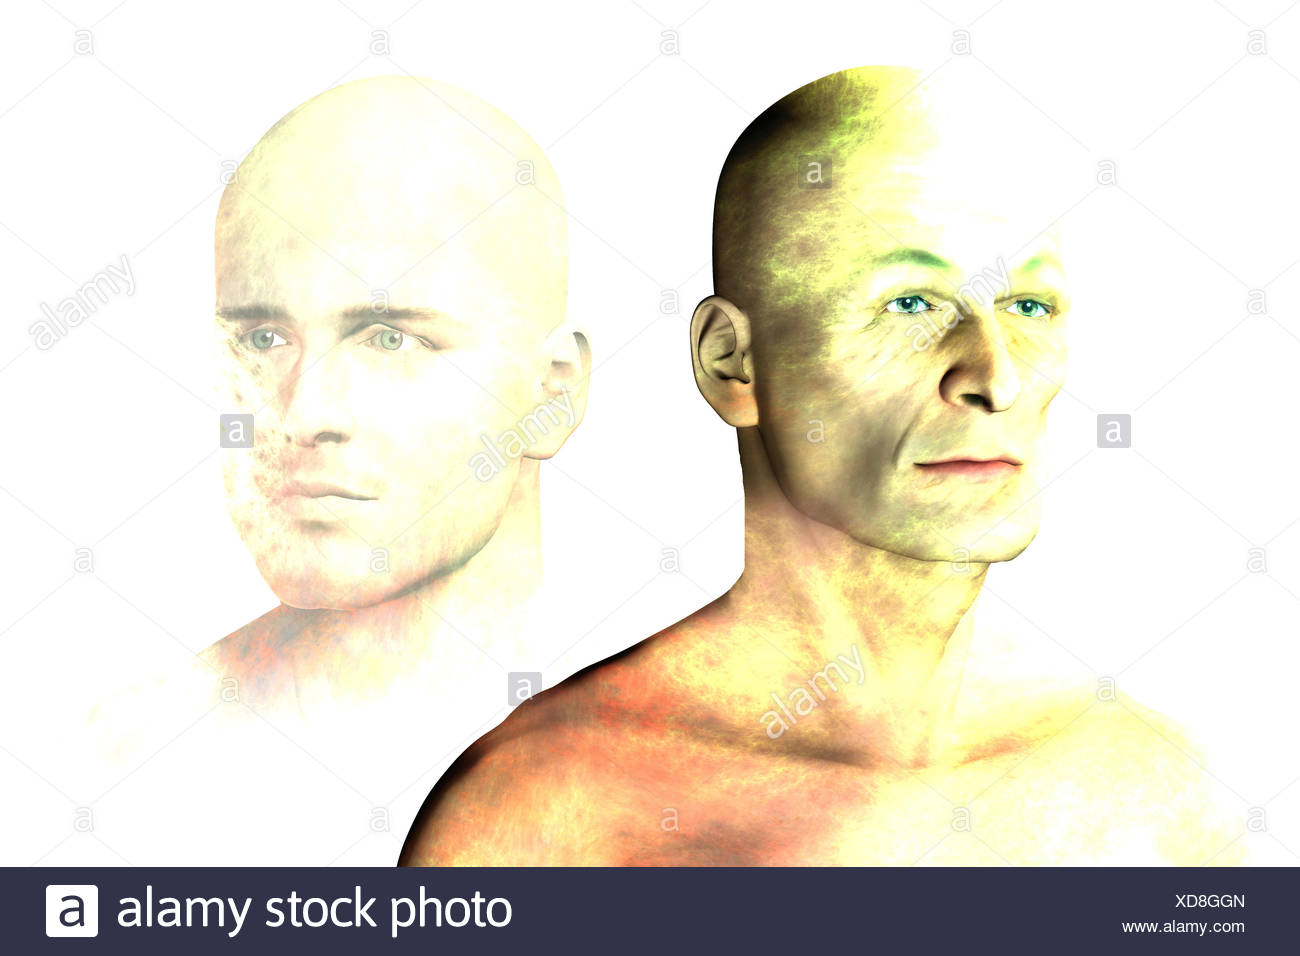 Illustration of an elderly man remembering his younger self. - Stock Image